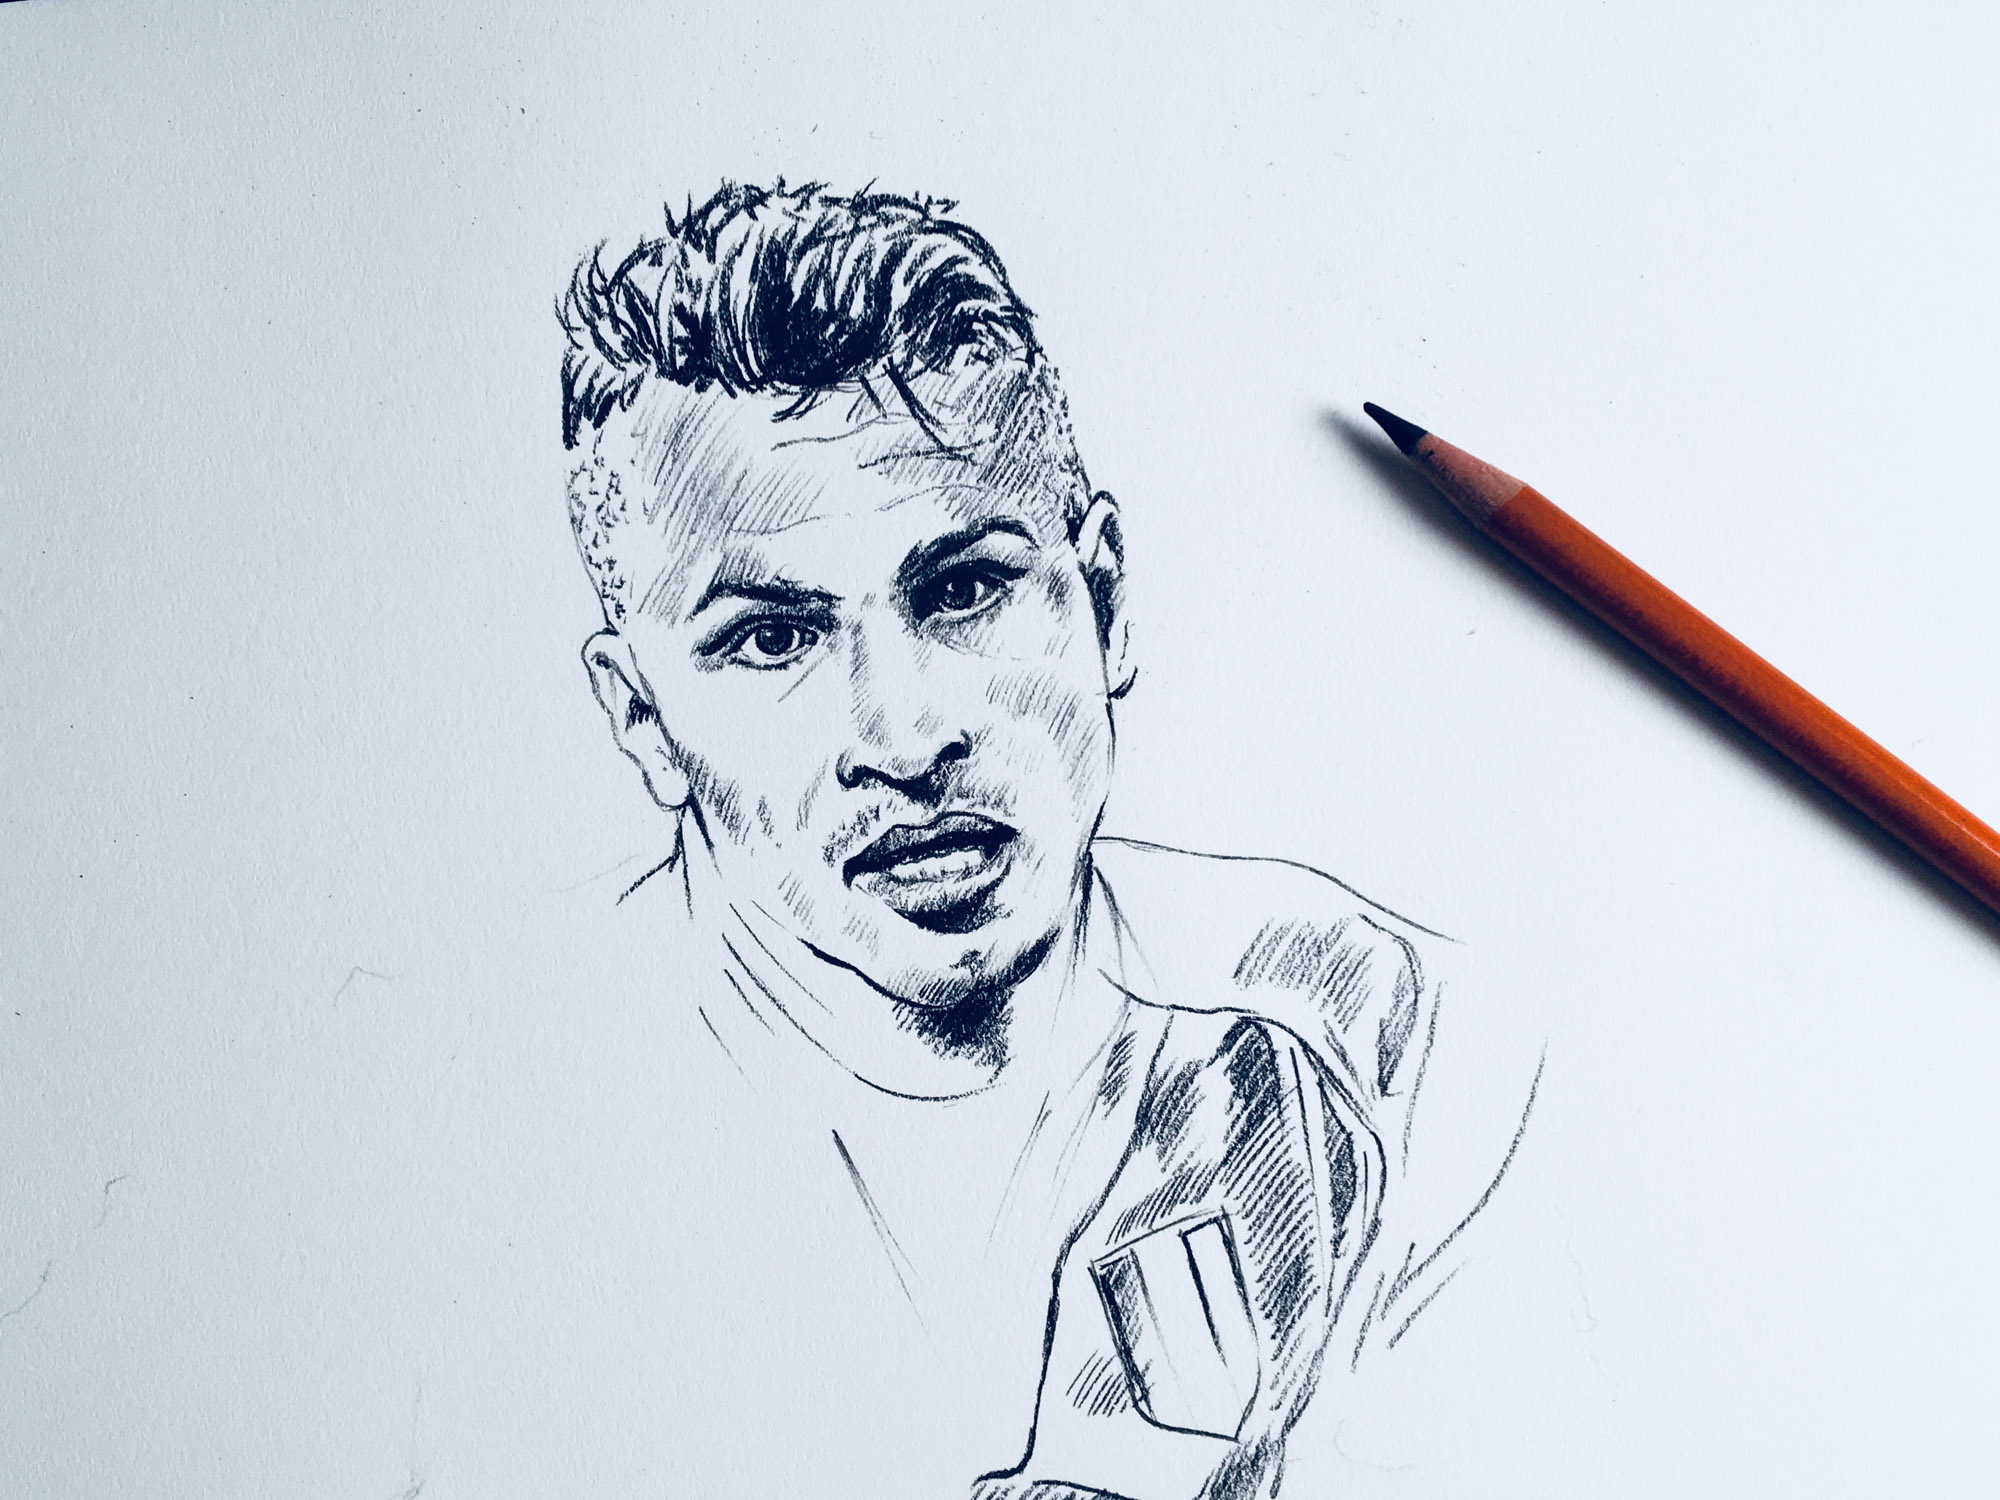 FootballAtlas_Sketch-3.jpg